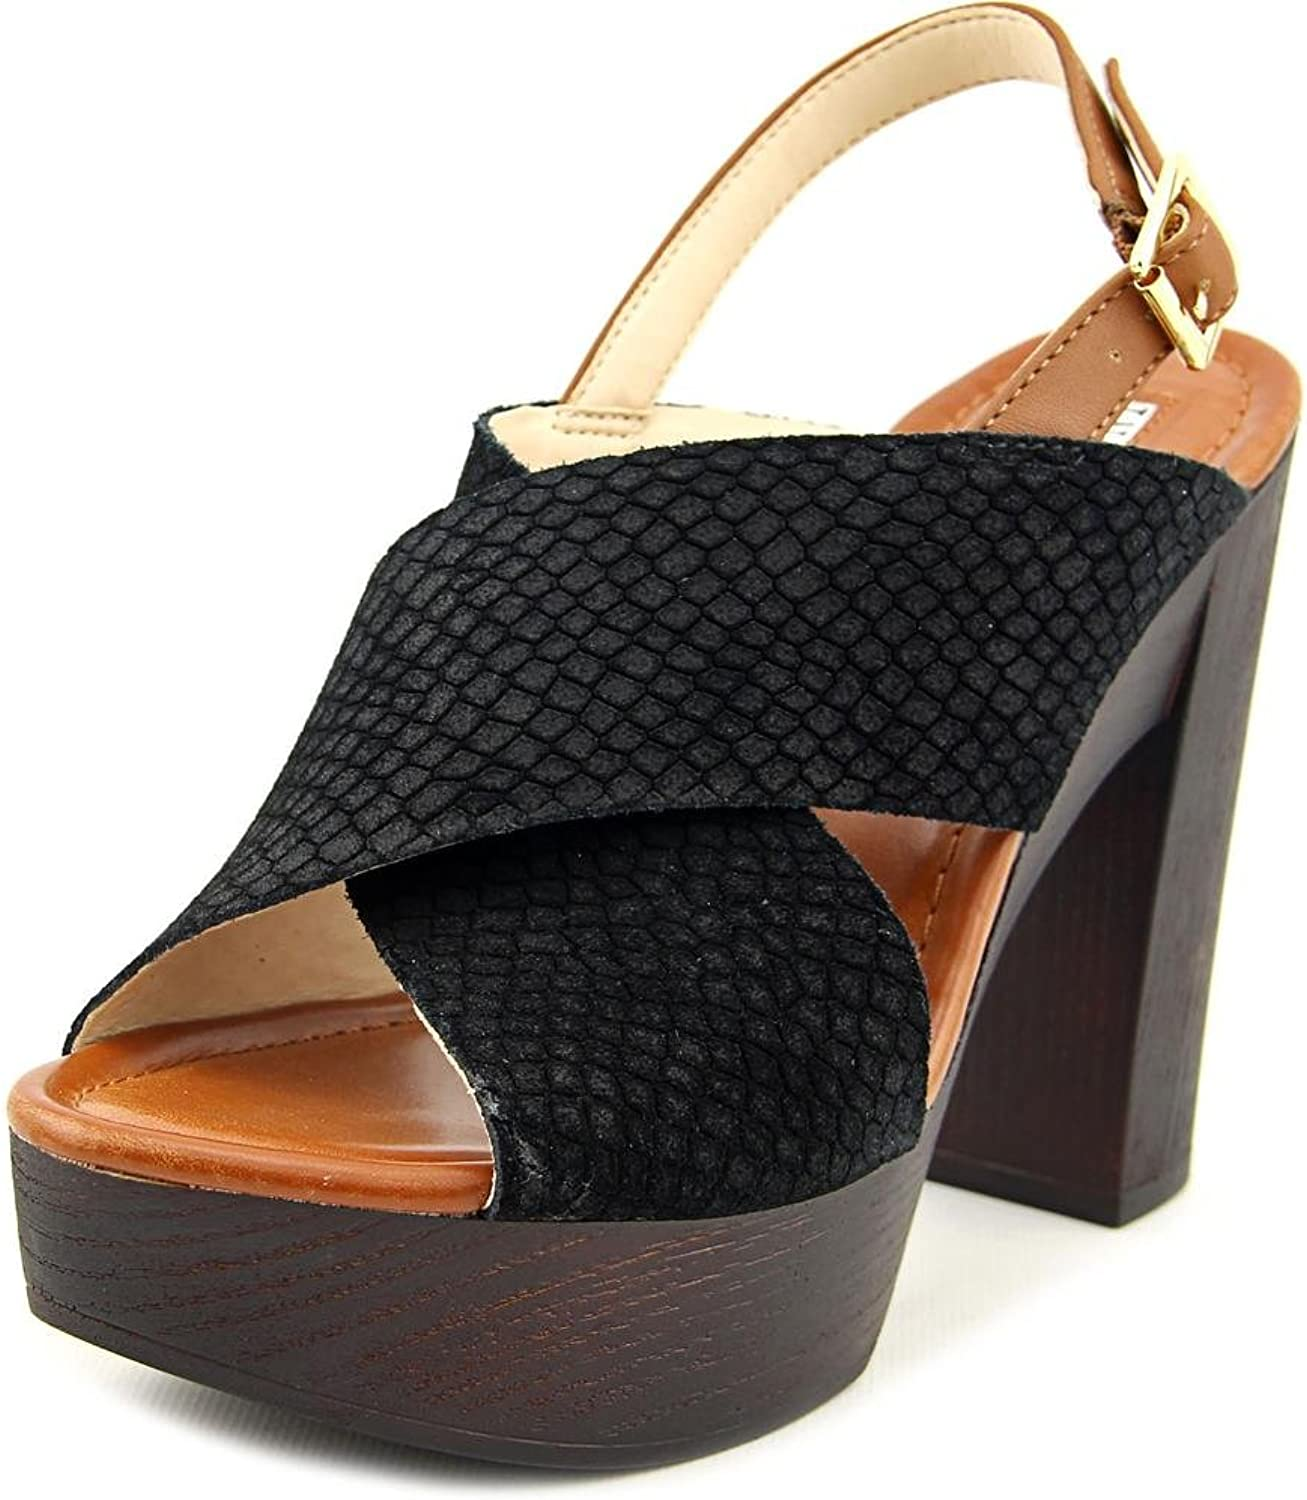 INC International Concepts Womens Cyleb Leather Open Toe, Black, Size 10.0